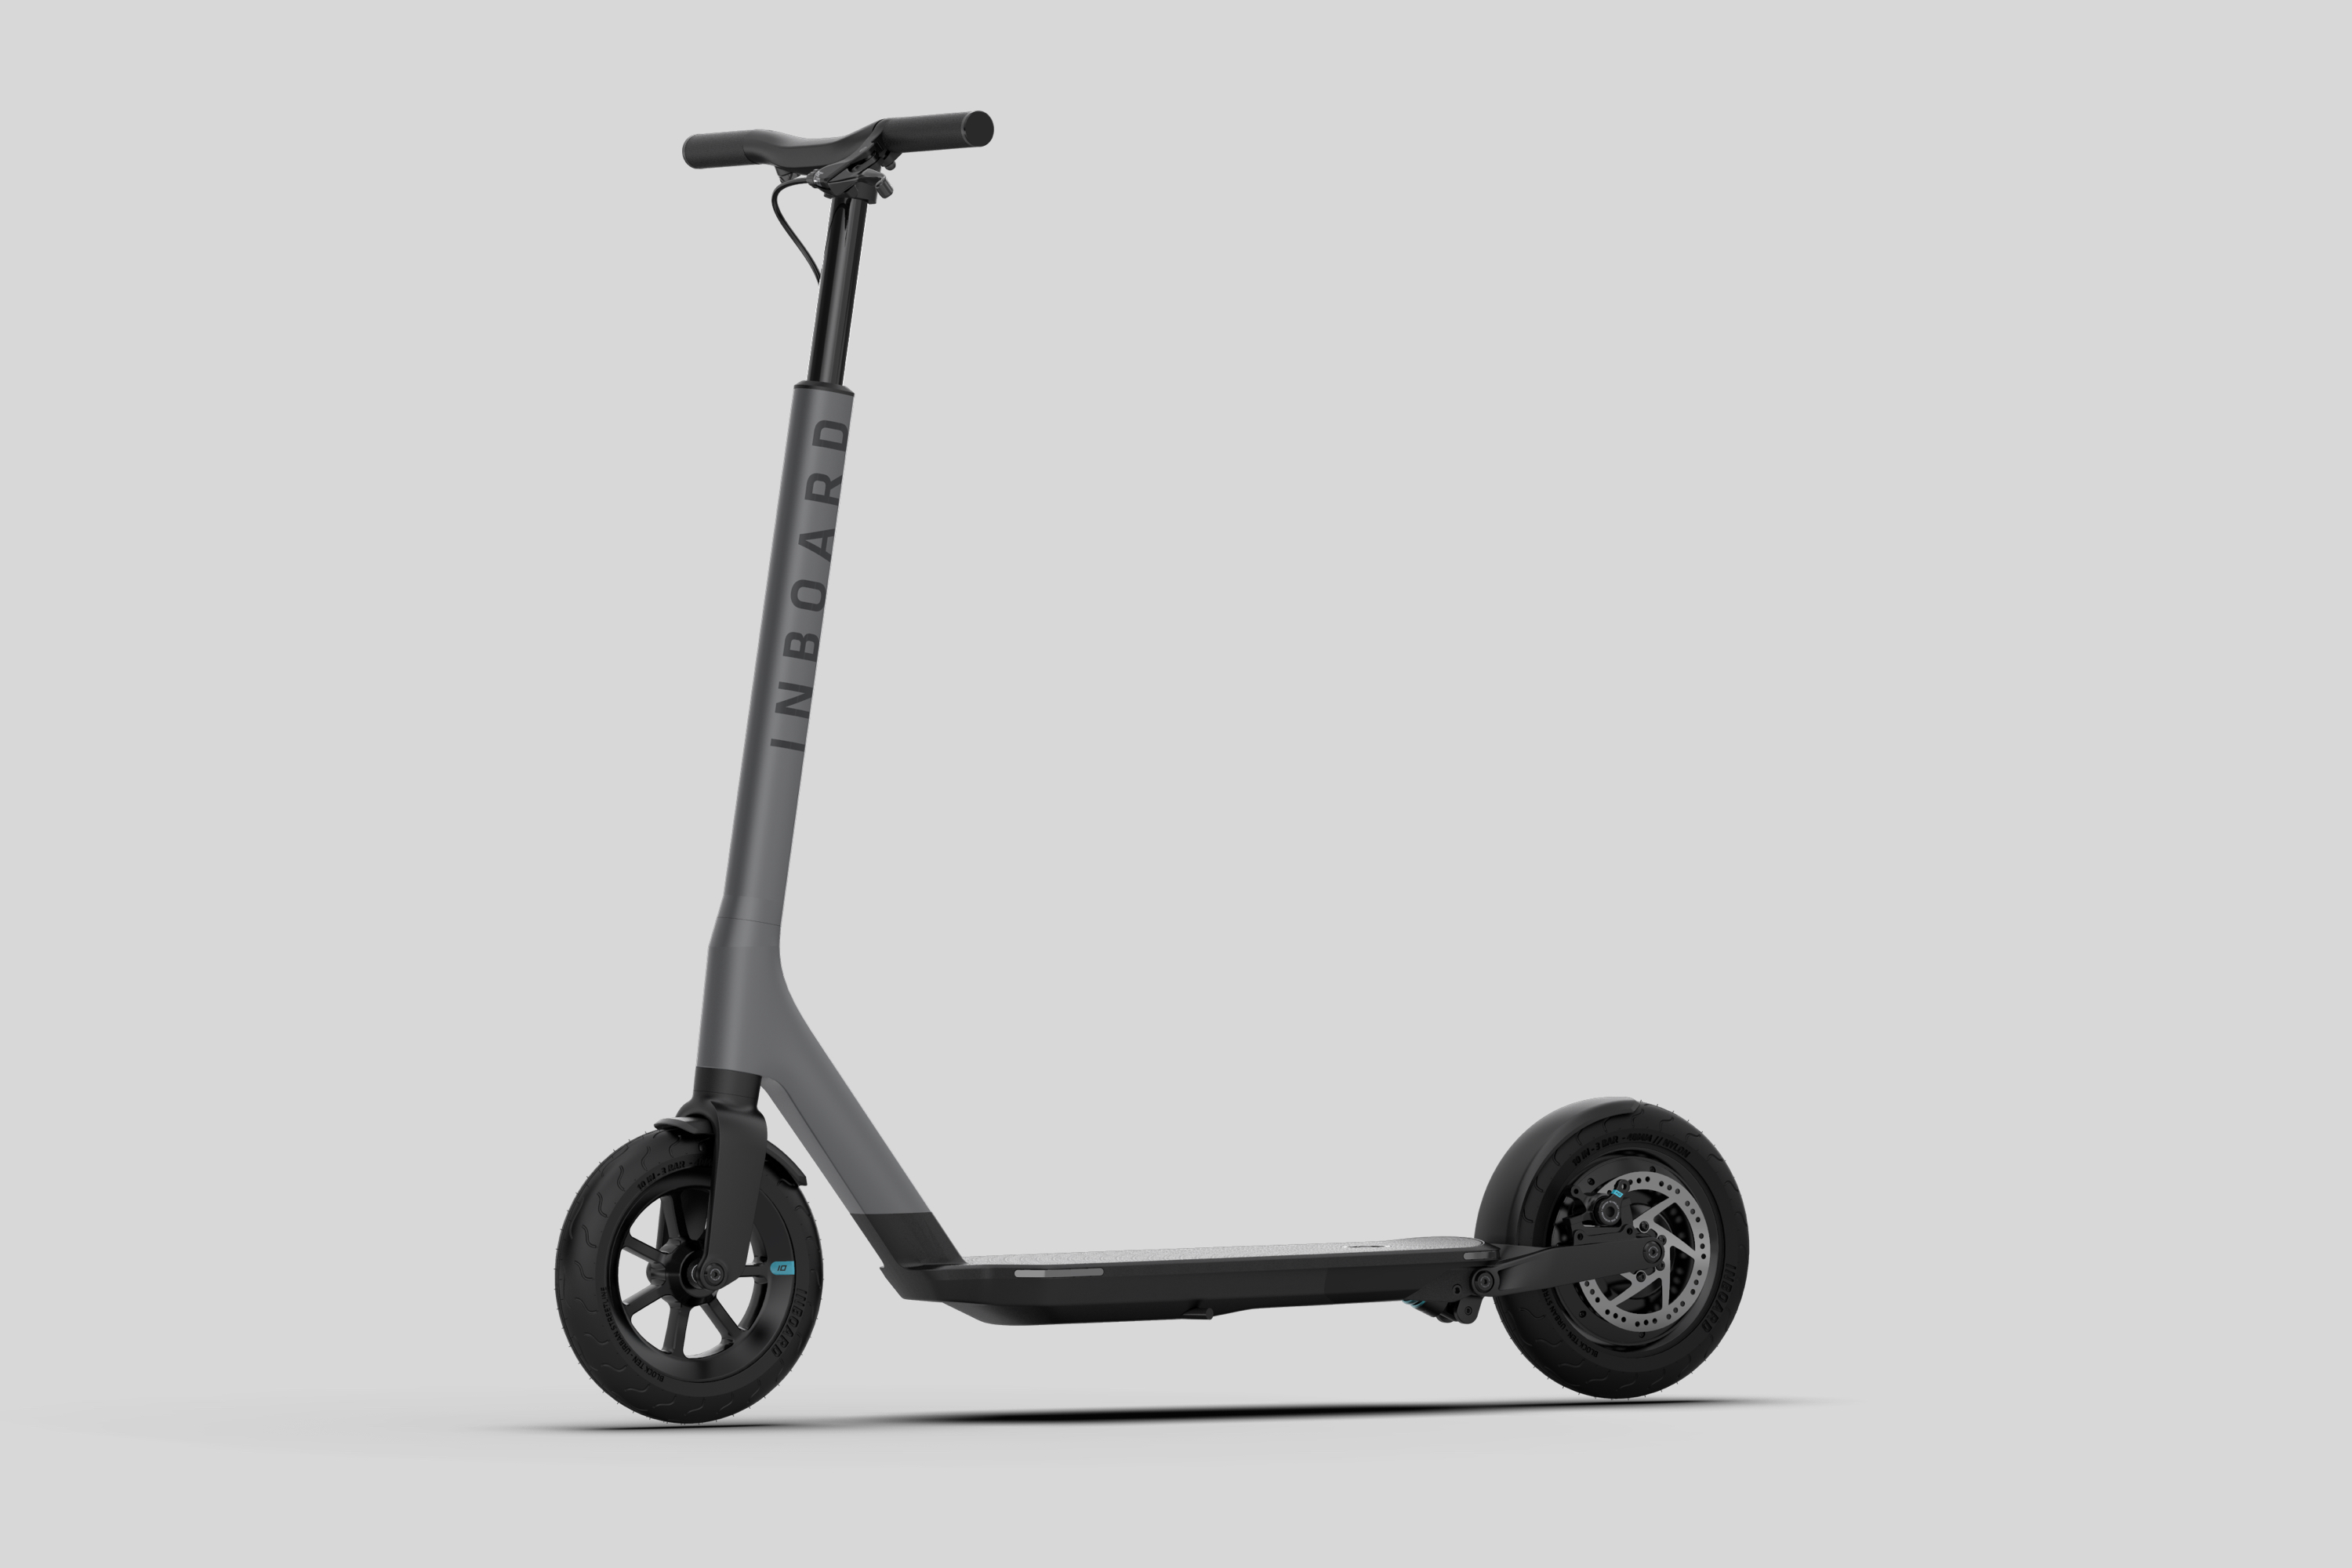 Electric Skateboard Startup Inboard Announces An E Scooter